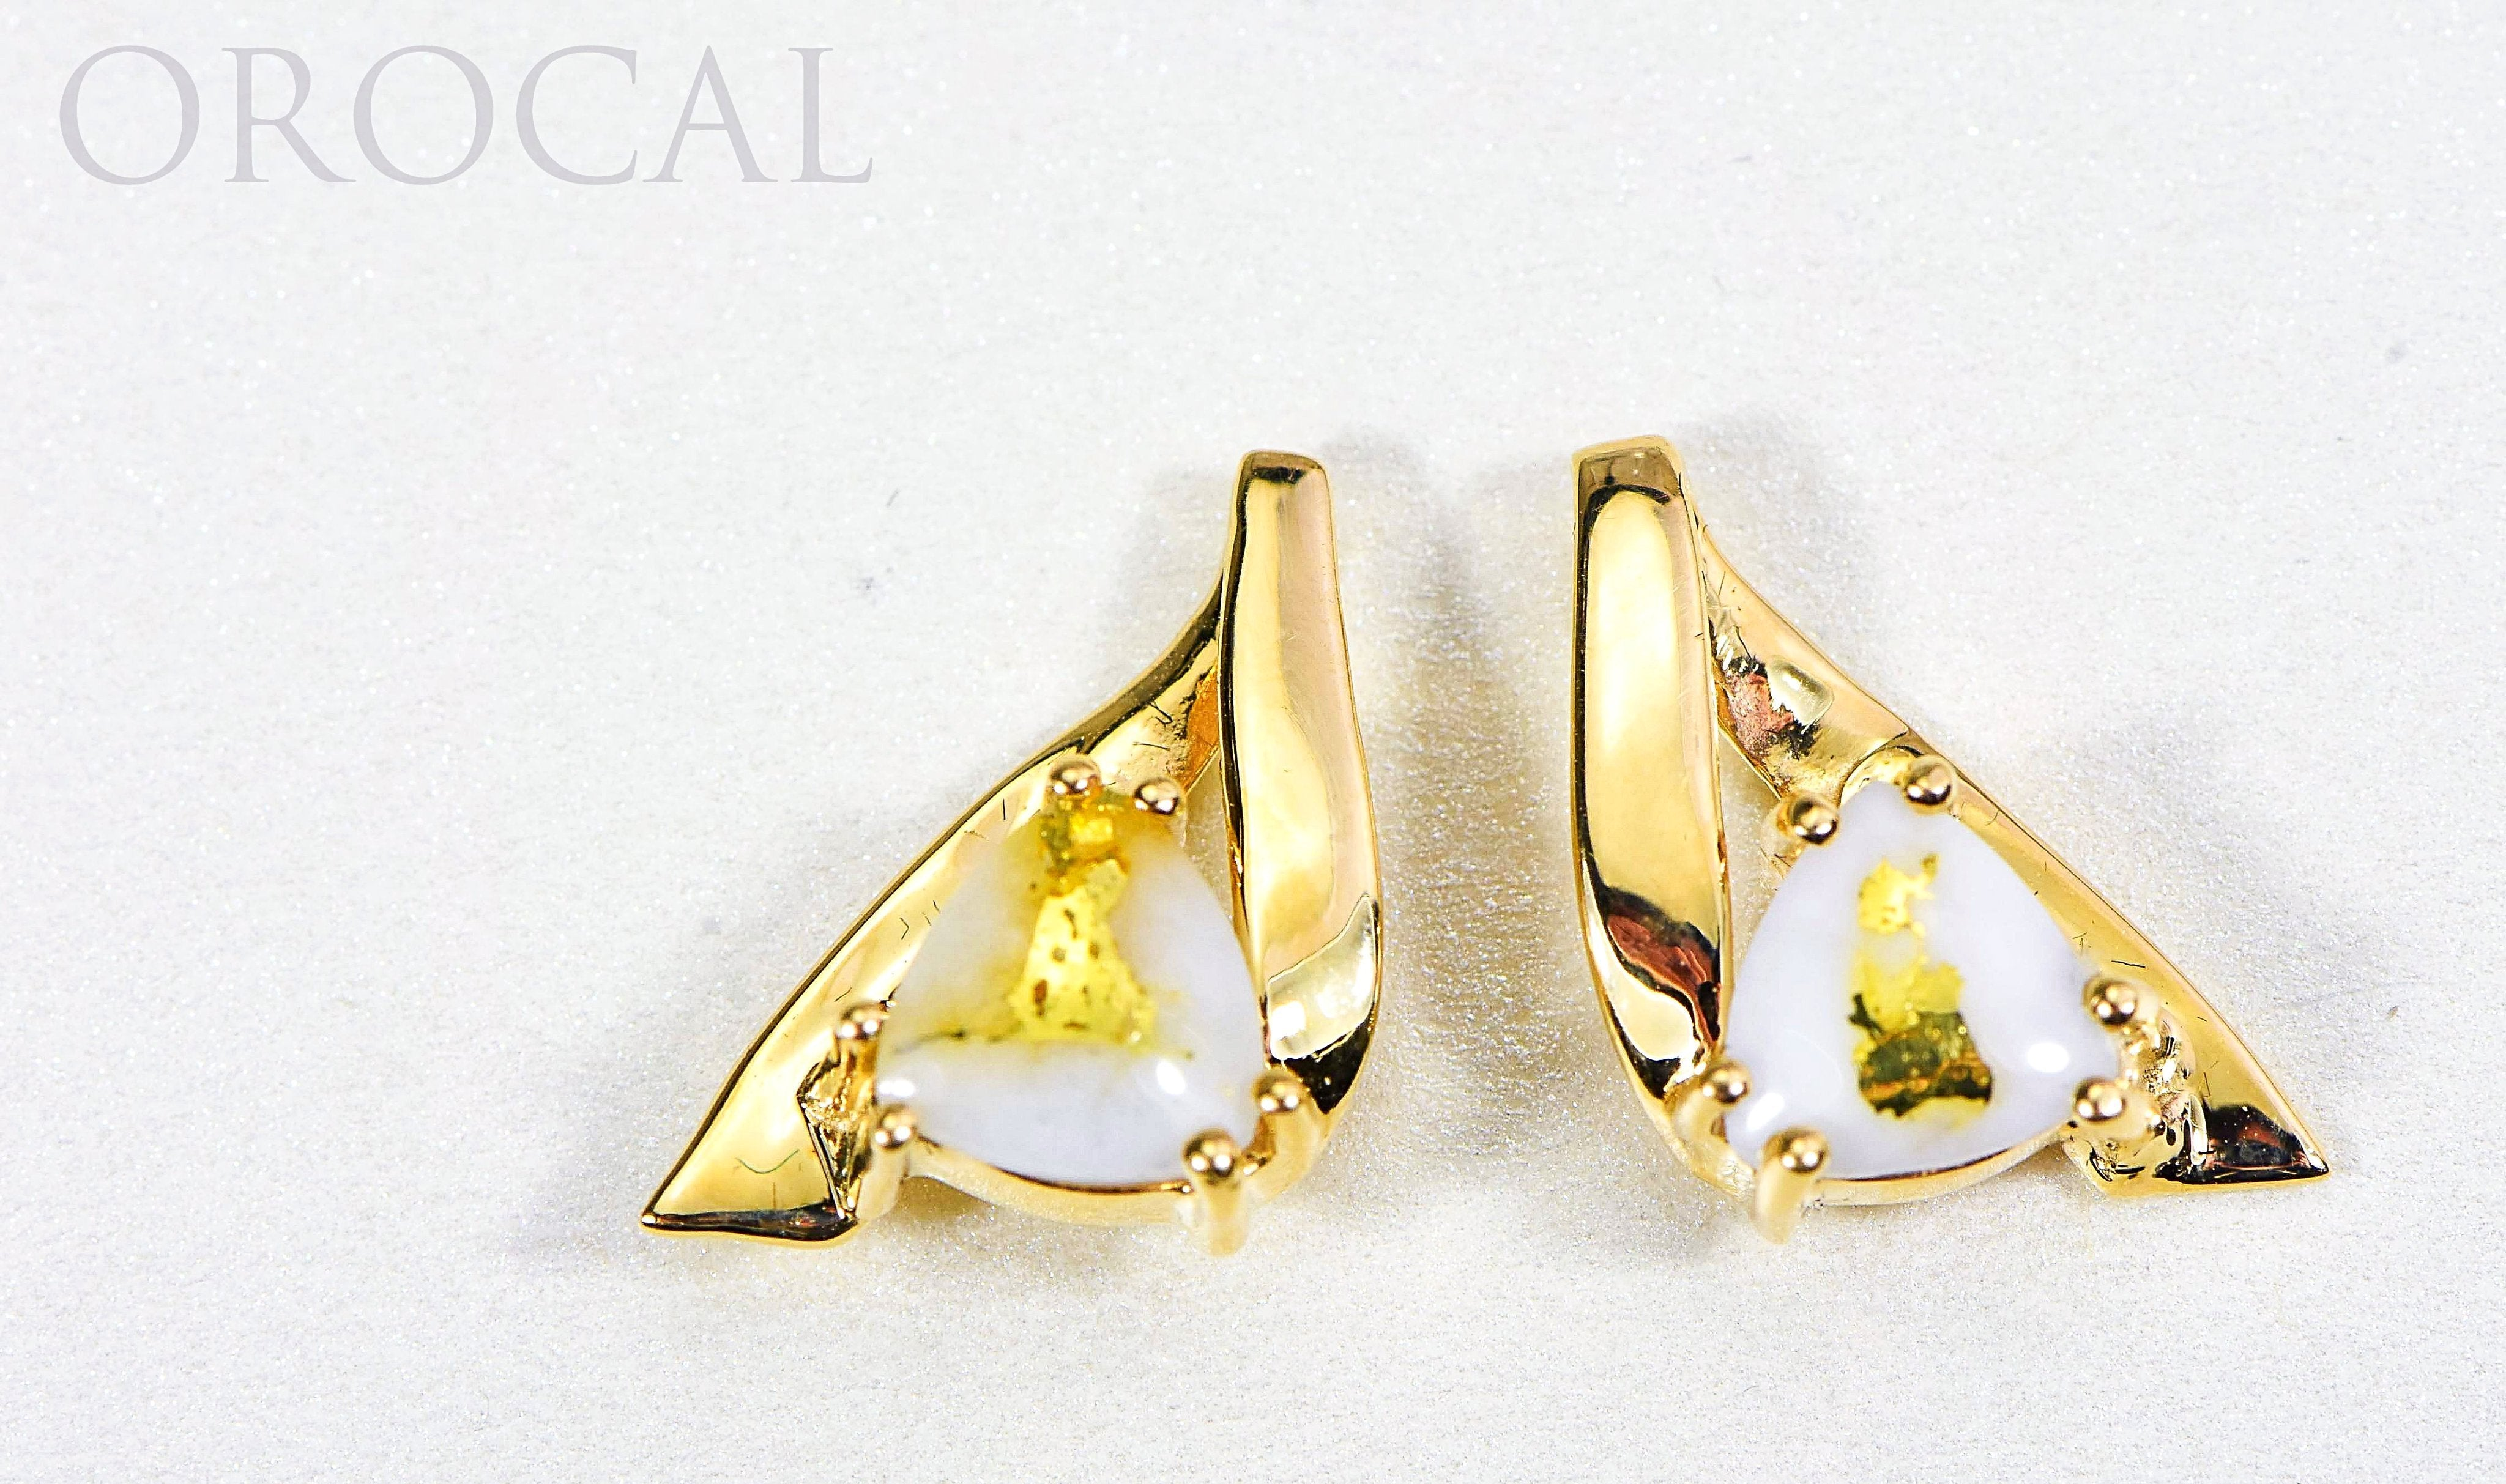 "Gold Quartz Earrings ""Orocal"" EDL77Q Genuine Hand Crafted Jewelry - 14K Gold Casting - Liquidbullion"